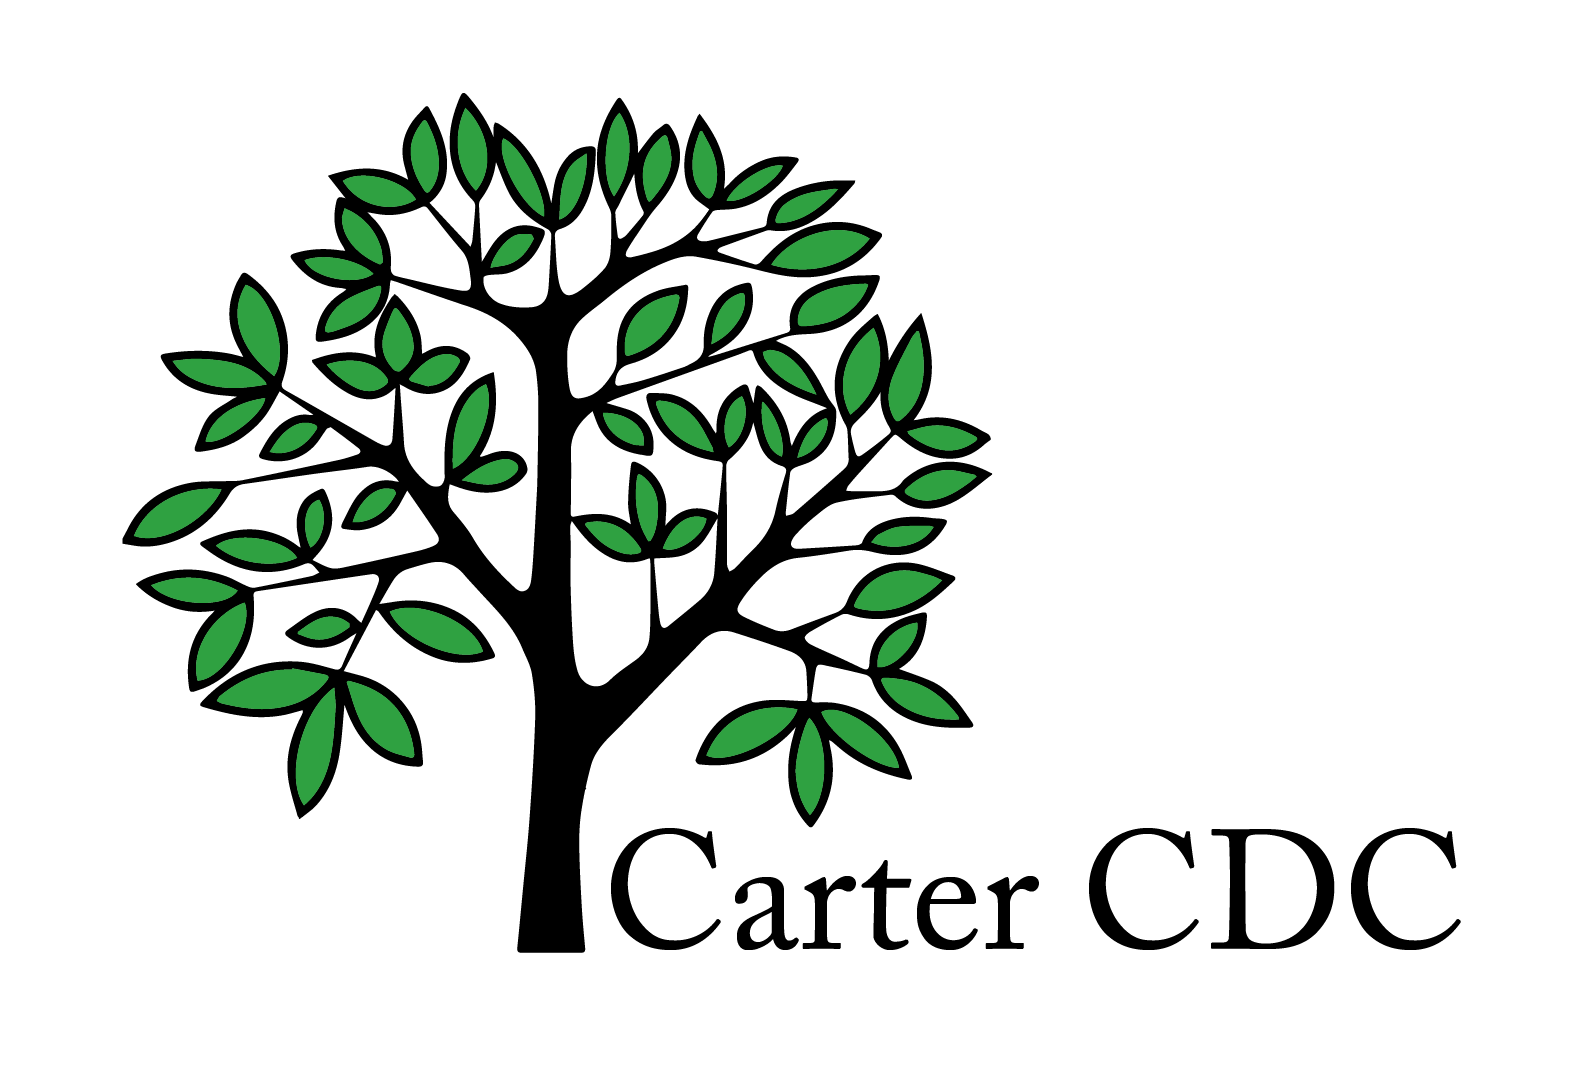 - The Carter Centerfocuses on the community of East Linden Street in Kennett Square. They work to build a neighborhood that is affordable with a high quality of life. They do this by providing after school and summer programs to the children of East Linden Street as well as providing food support to children. They also aim to create a sense of community through several large events like an annual backpack drive.Carter Center collaborates with local churches to provide these services. They have put a face and a voice to the community as they work to revitalize this historic area of Kennett Square.To learn more about the Carter Center please visit their website by clicking here!